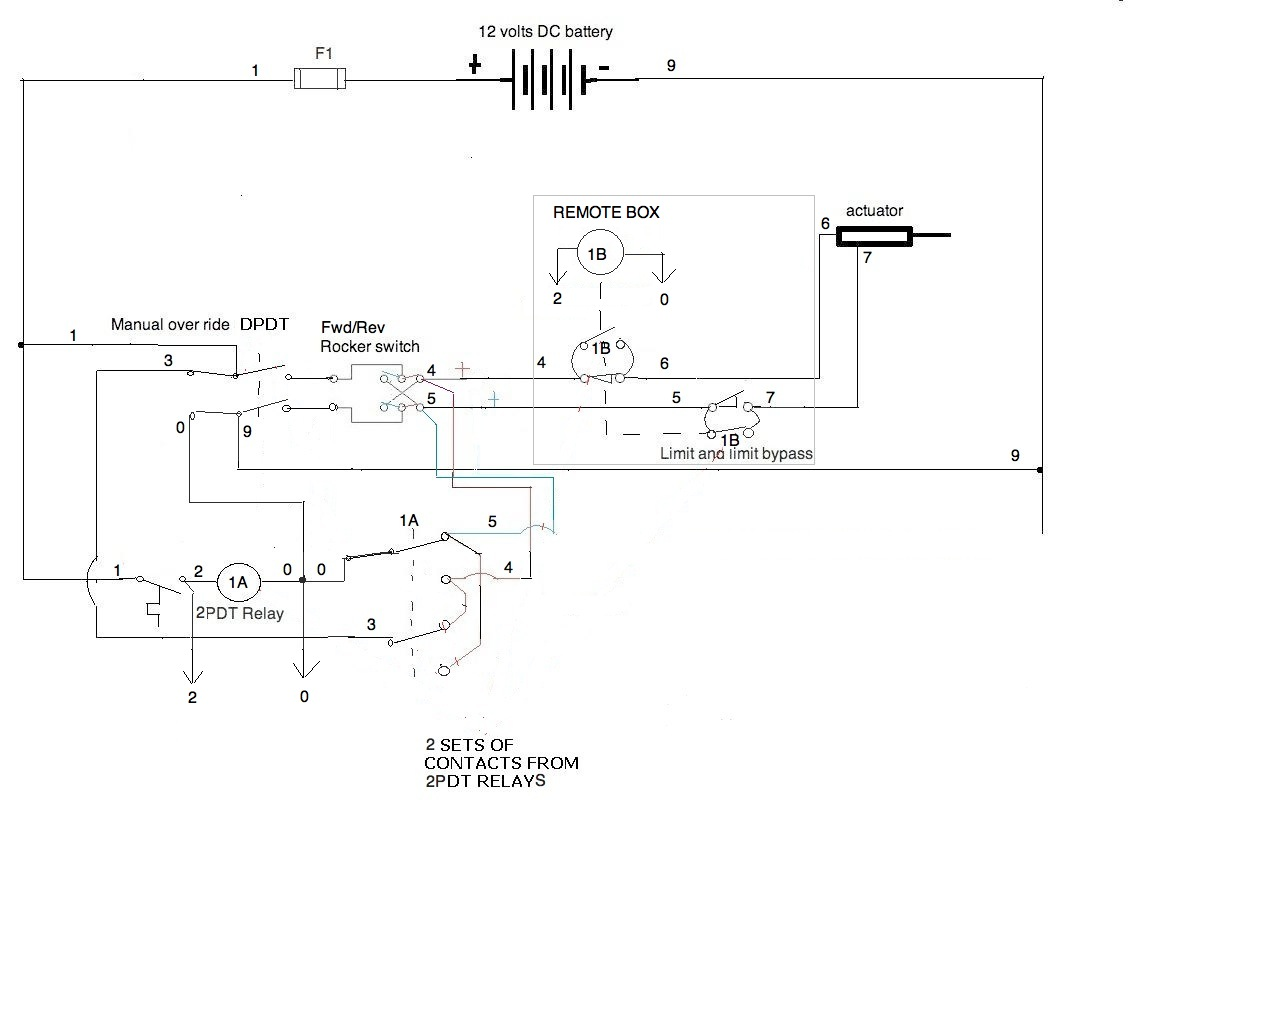 Linear Actuator Controller Wiring Diagrams on ac motor controller wiring diagrams, 115 230 motor wiring diagrams, bulldog security wiring diagrams, honeywell actuator wiring diagrams,